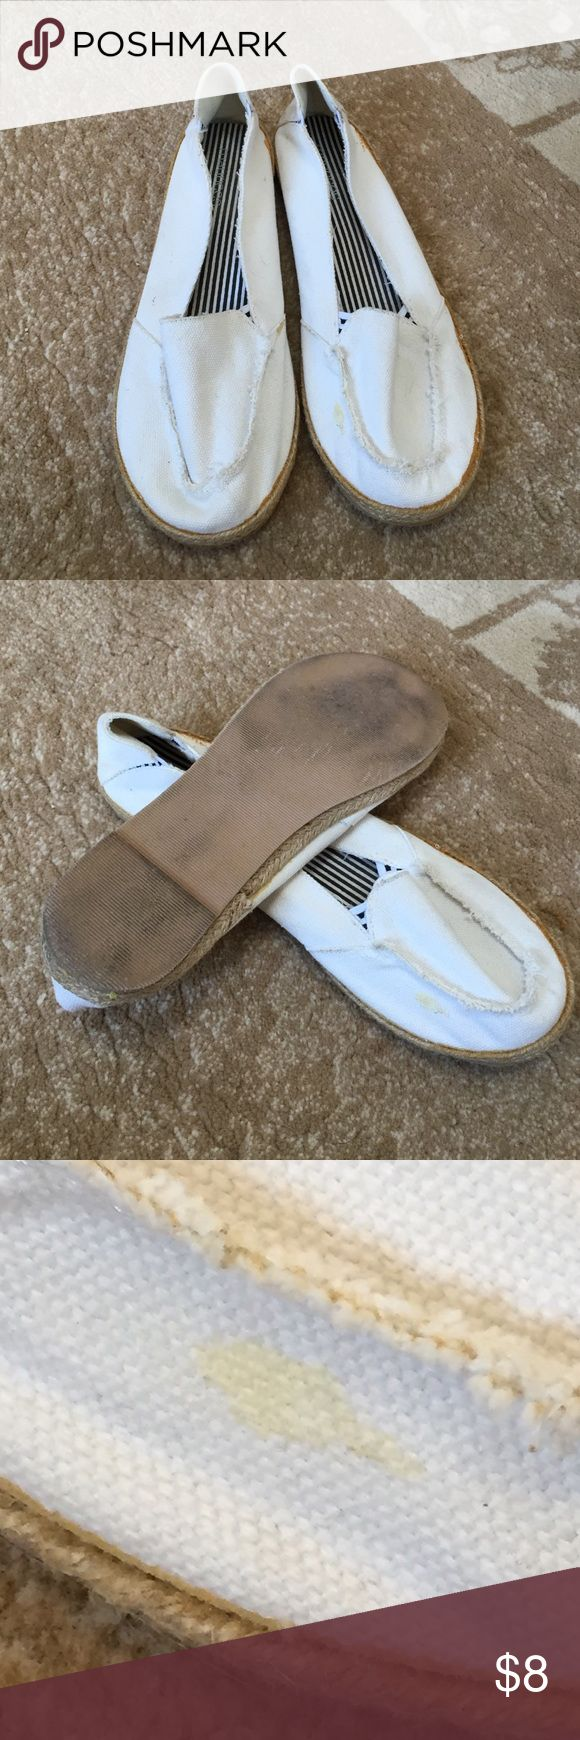 White slip ons shoes Maurice flat slip ons little spot on shoe Maurices Shoes Flats & Loafers